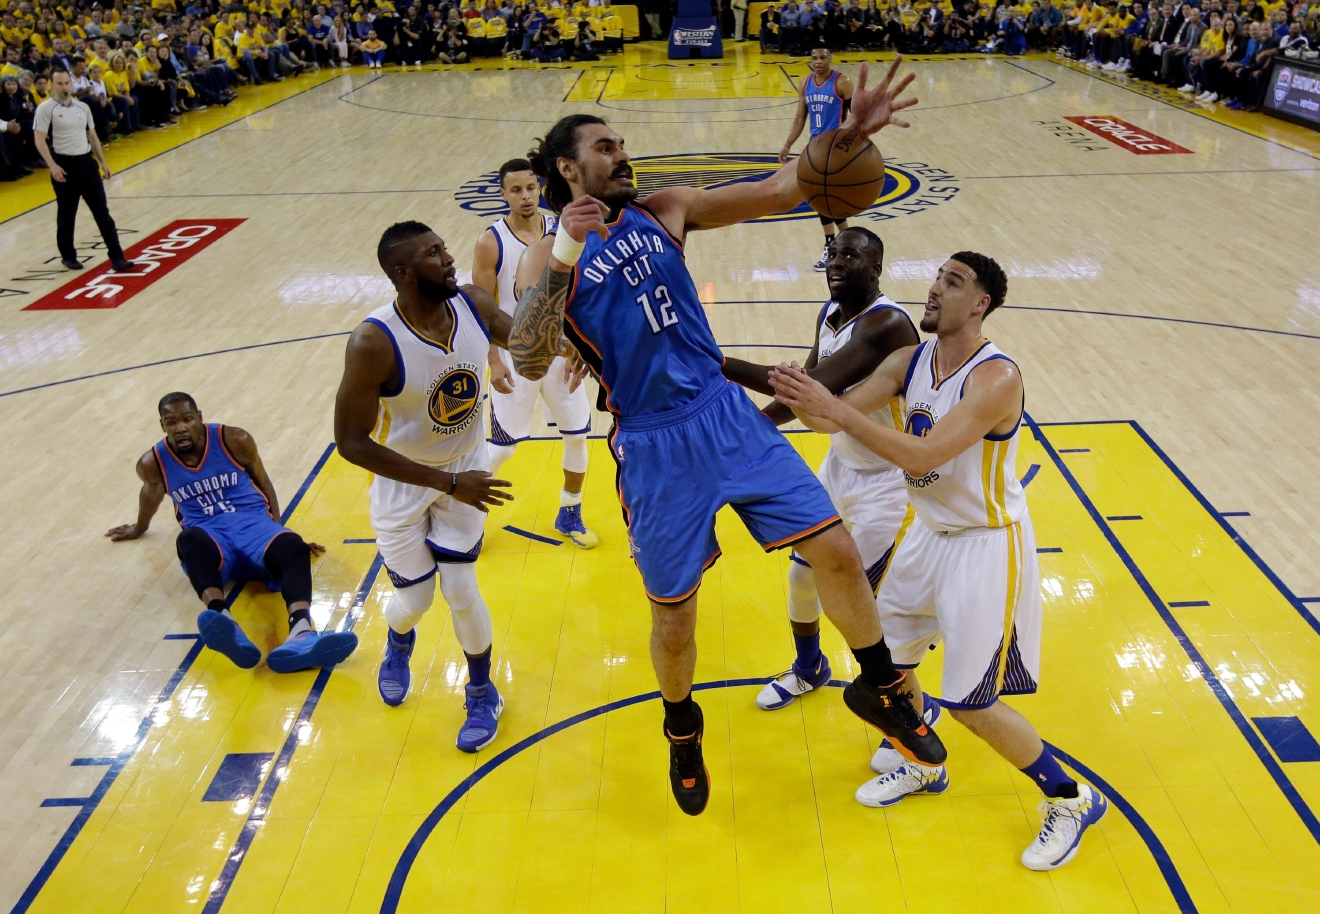 Oklahoma City Thunder's Steven Adams (12) grabs a rebound next to Golden State Warriors' Klay Thompson, right, and Festus Ezeli (31) during the first half in Game 2 of the NBA basketball Western Conference finals Wednesday, May 18, 2016, in Oakland, Calif. (AP Photo/Marcio Jose Sanchez)